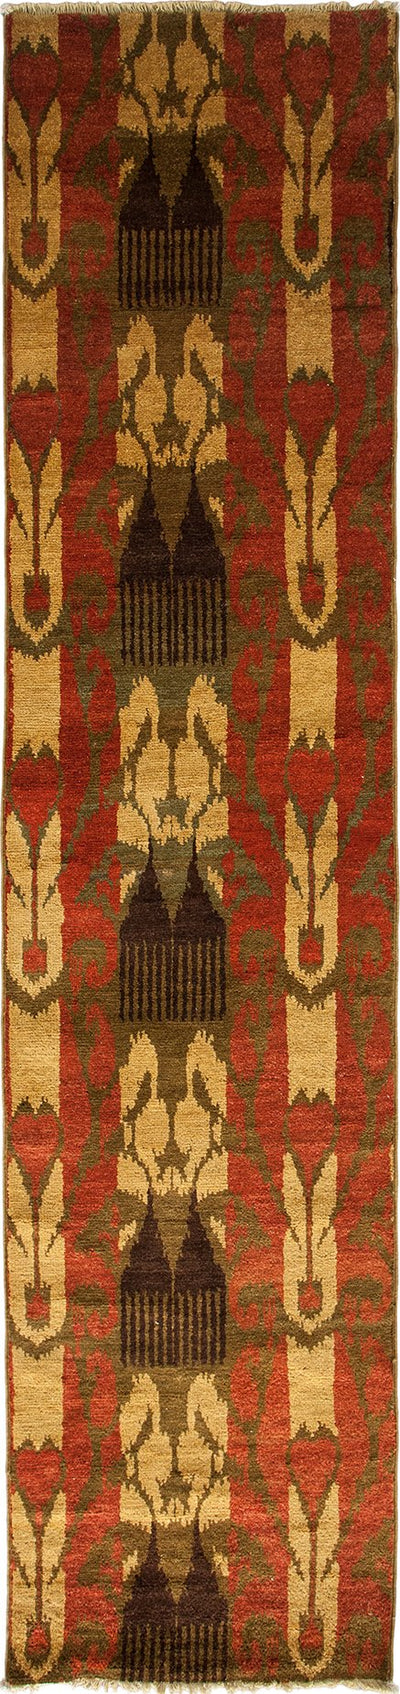 "Ikat, Multi Wool Runner - 2' 4"" x 10' 2"""